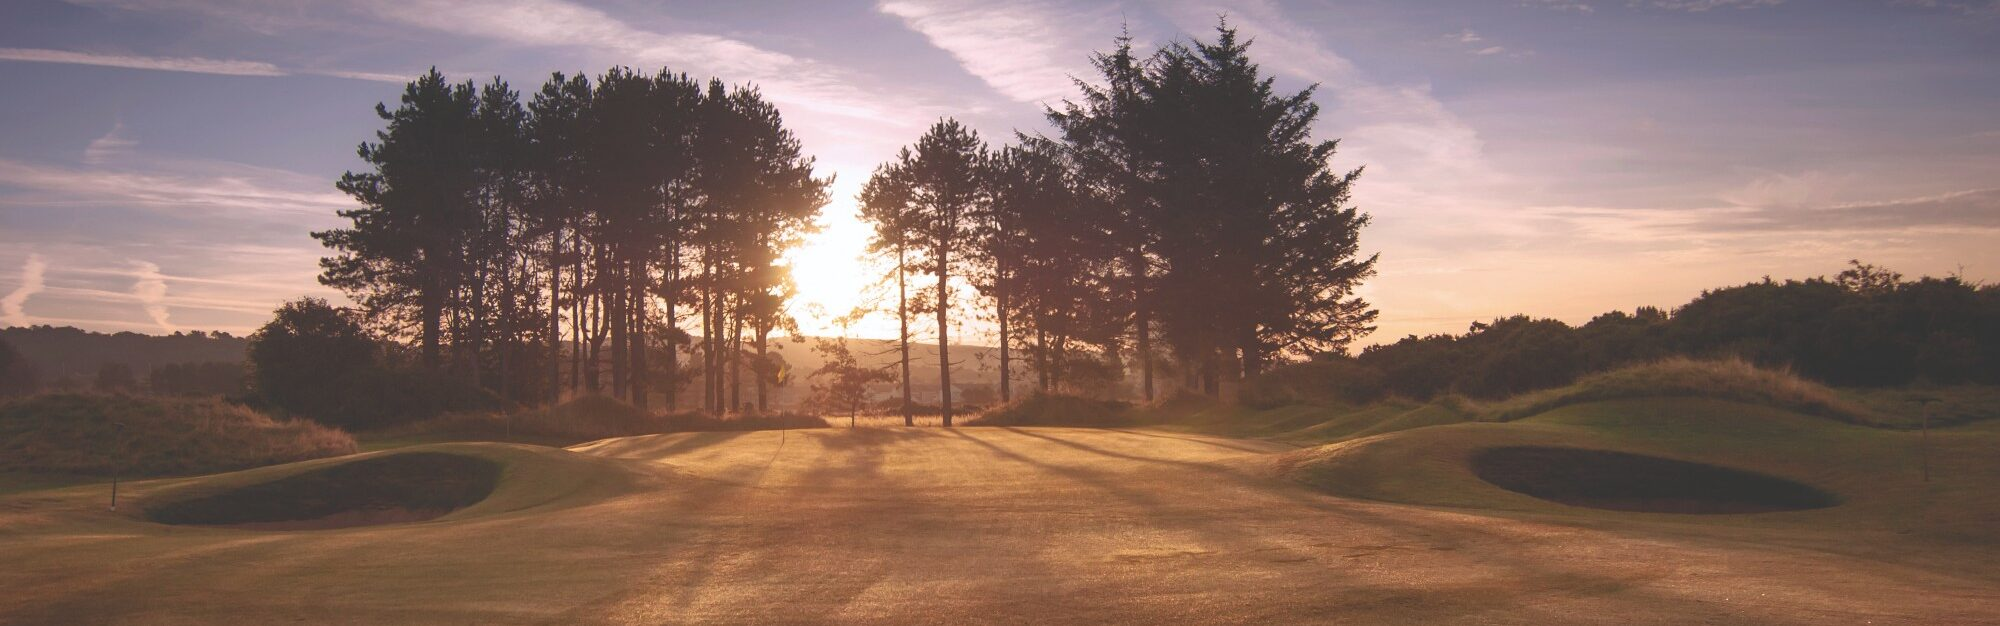 Kilmarnock Barassie: Everything a links course can possibly offer